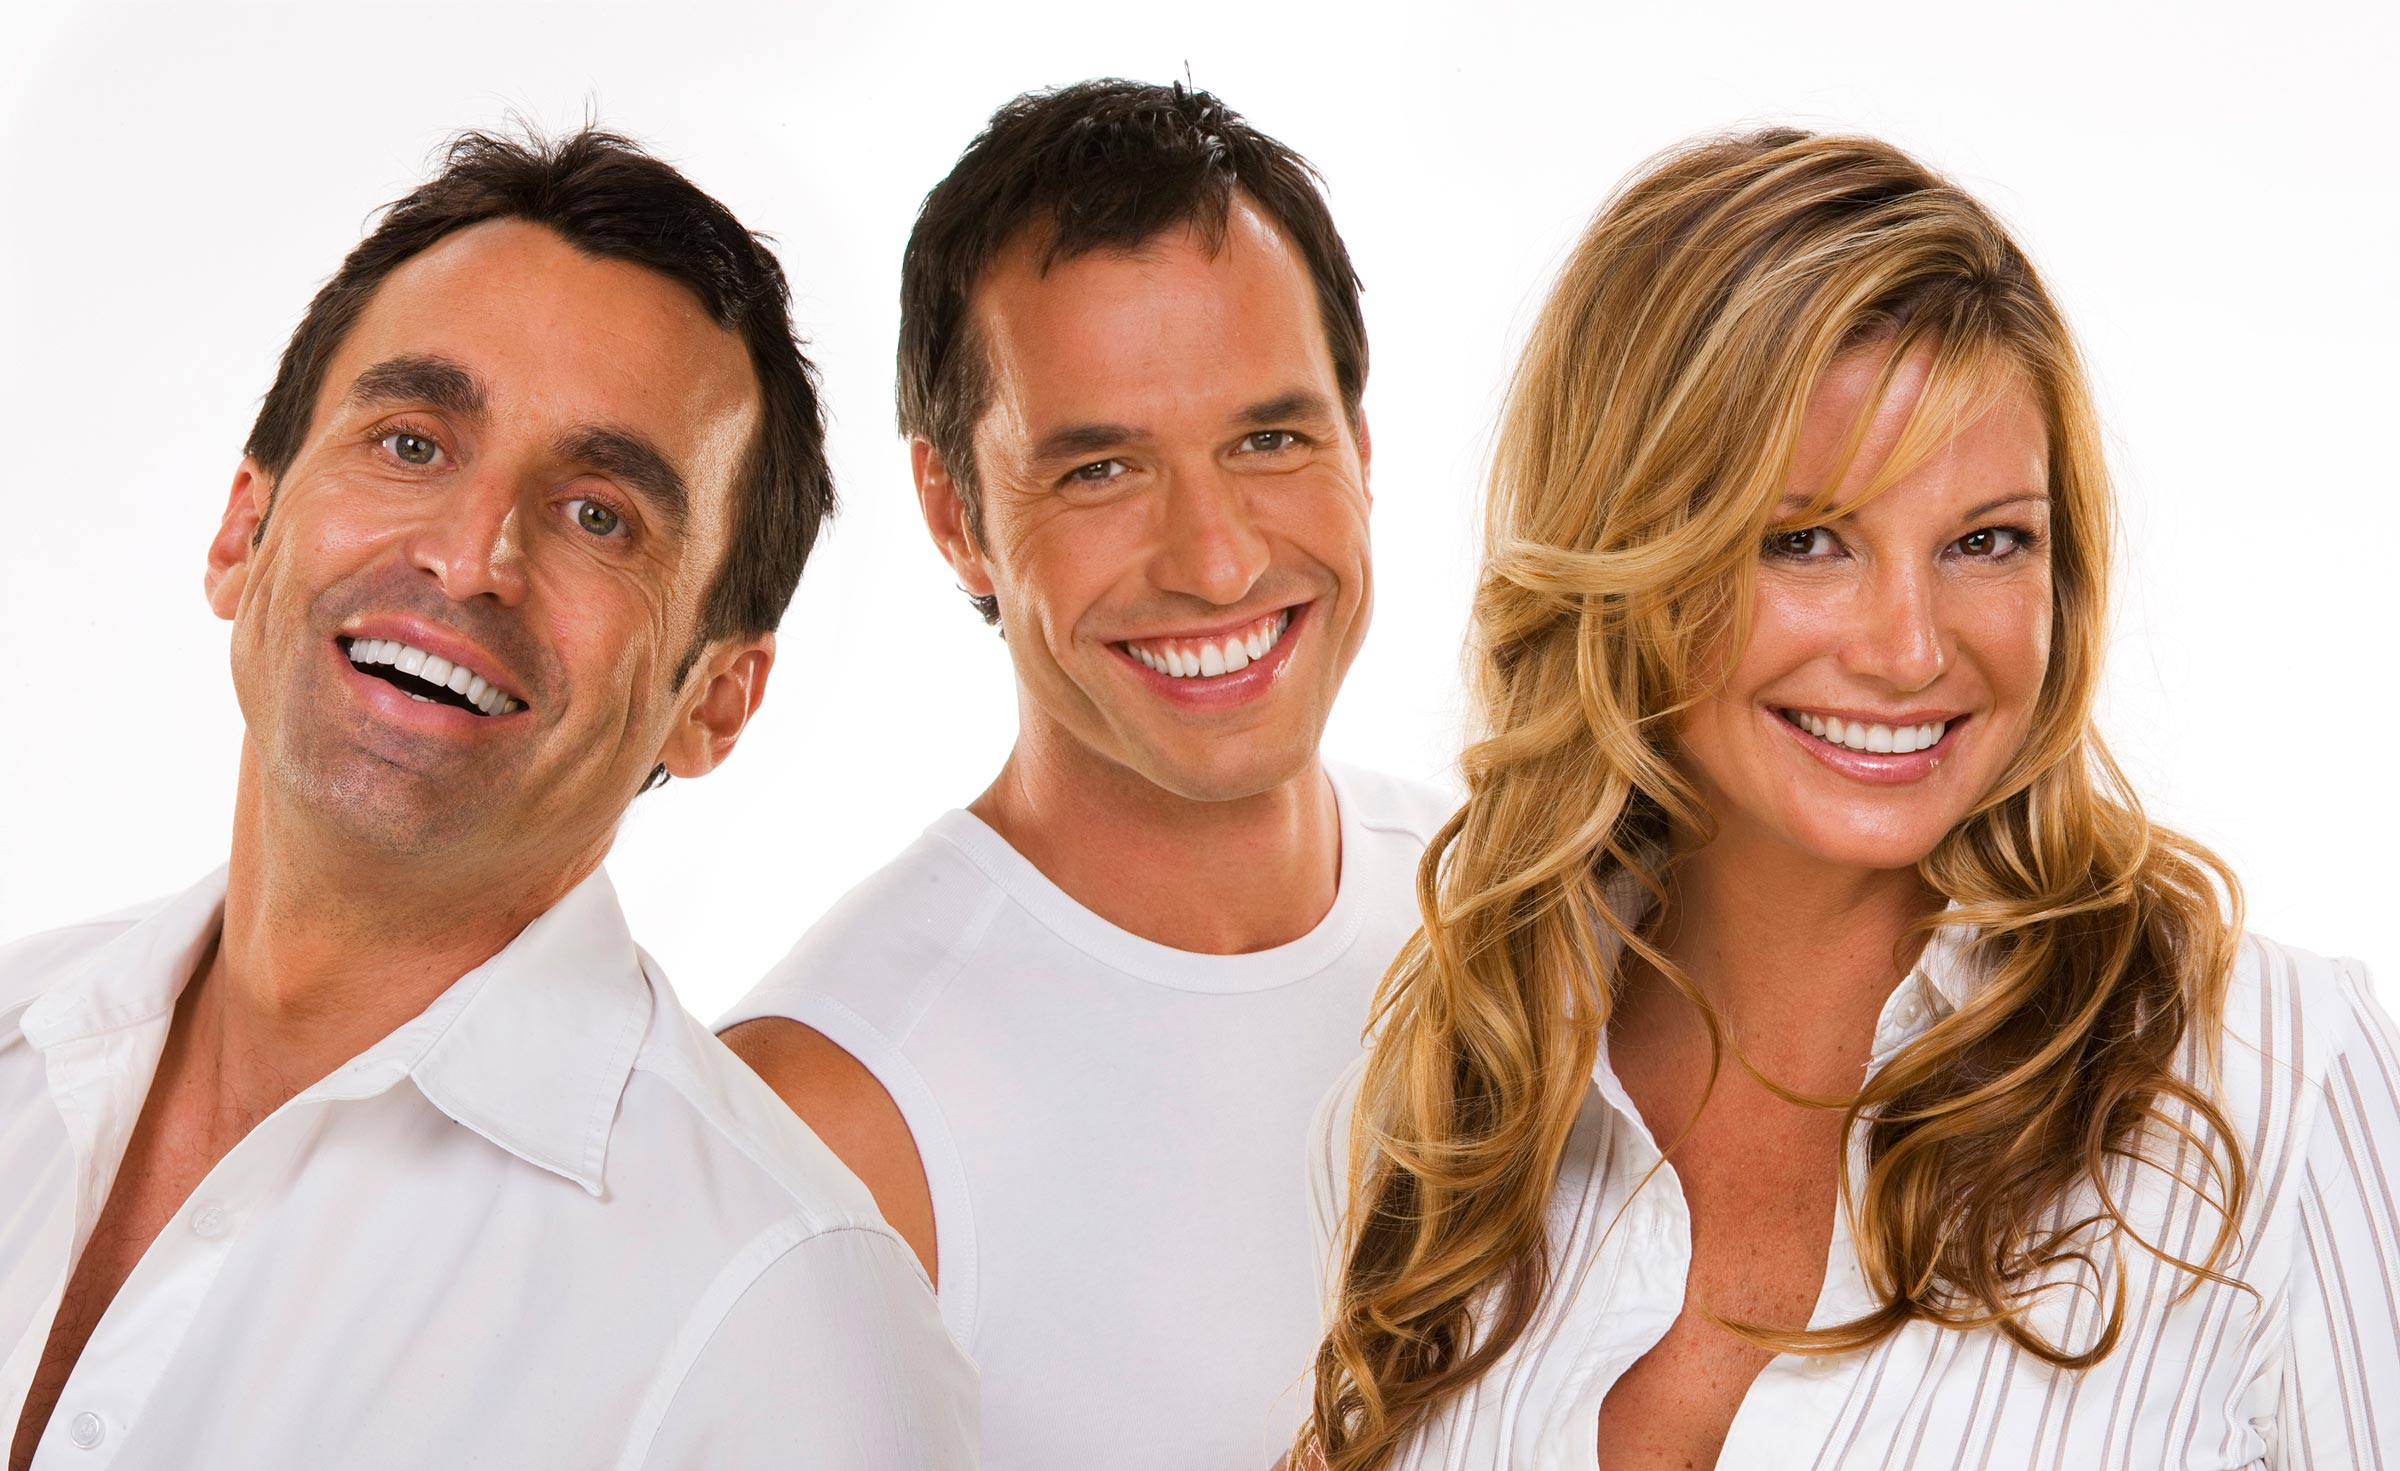 three people wearing white smiling at camera with white teeth